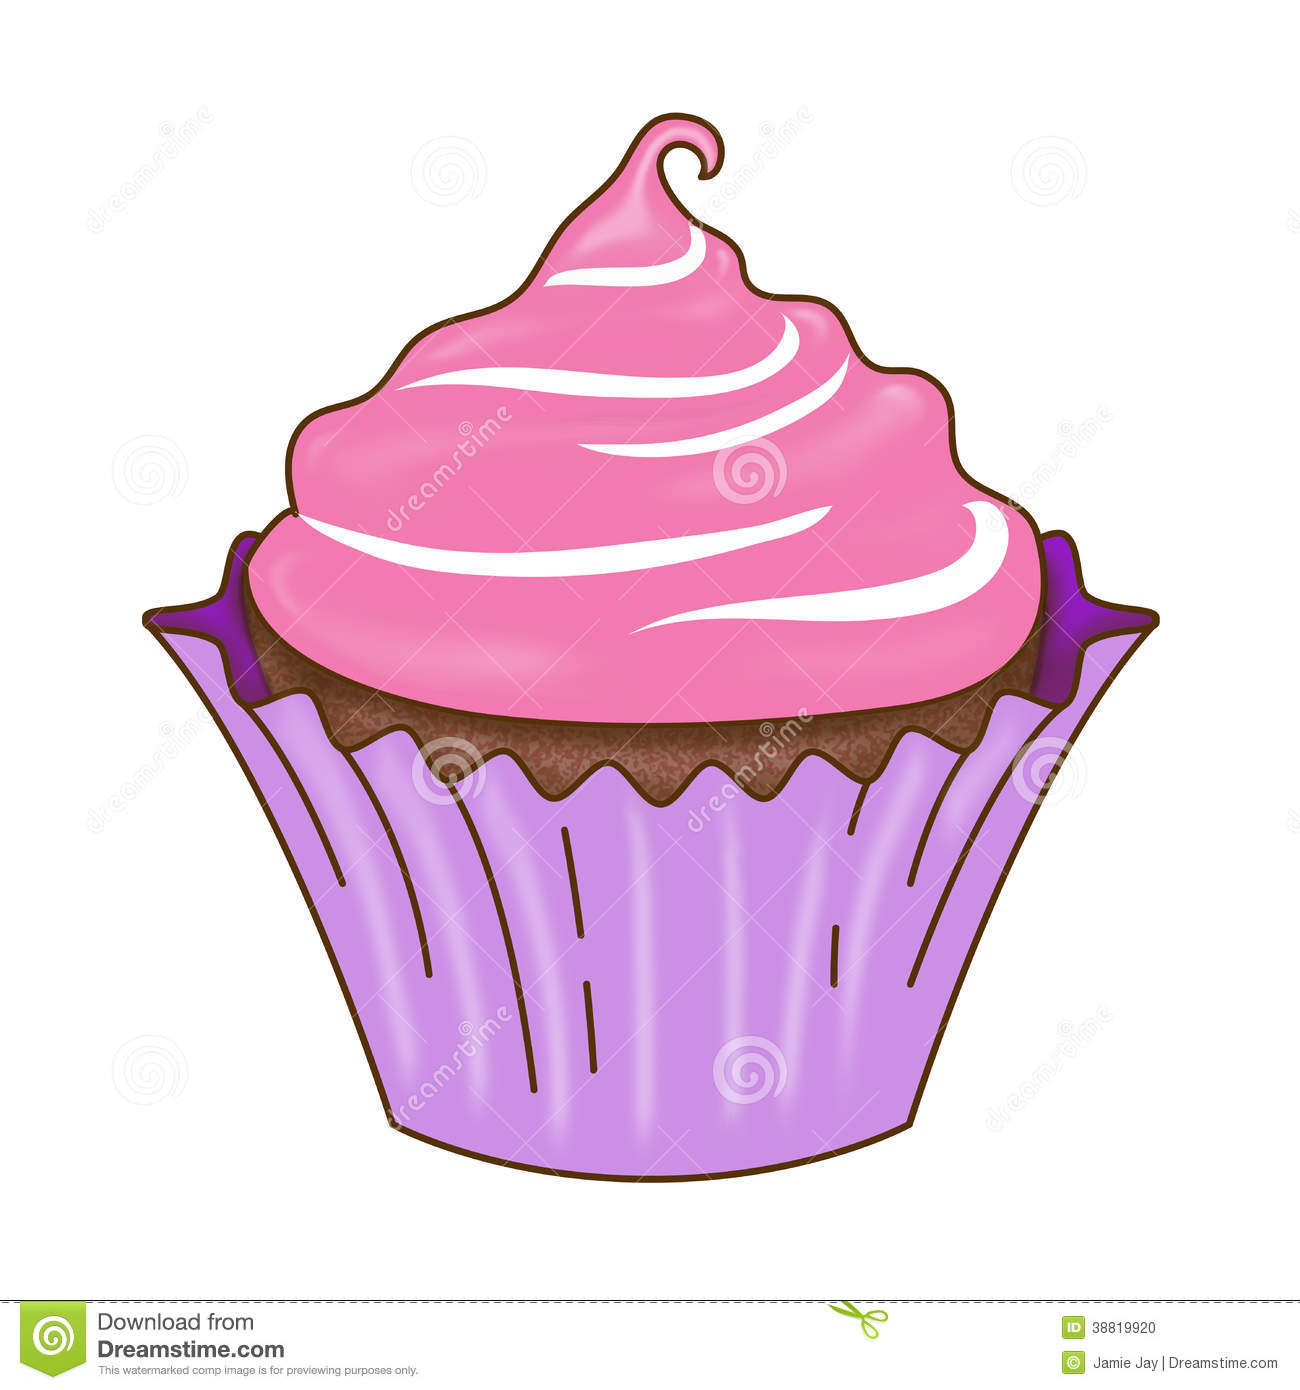 Cupcake icing clipart.